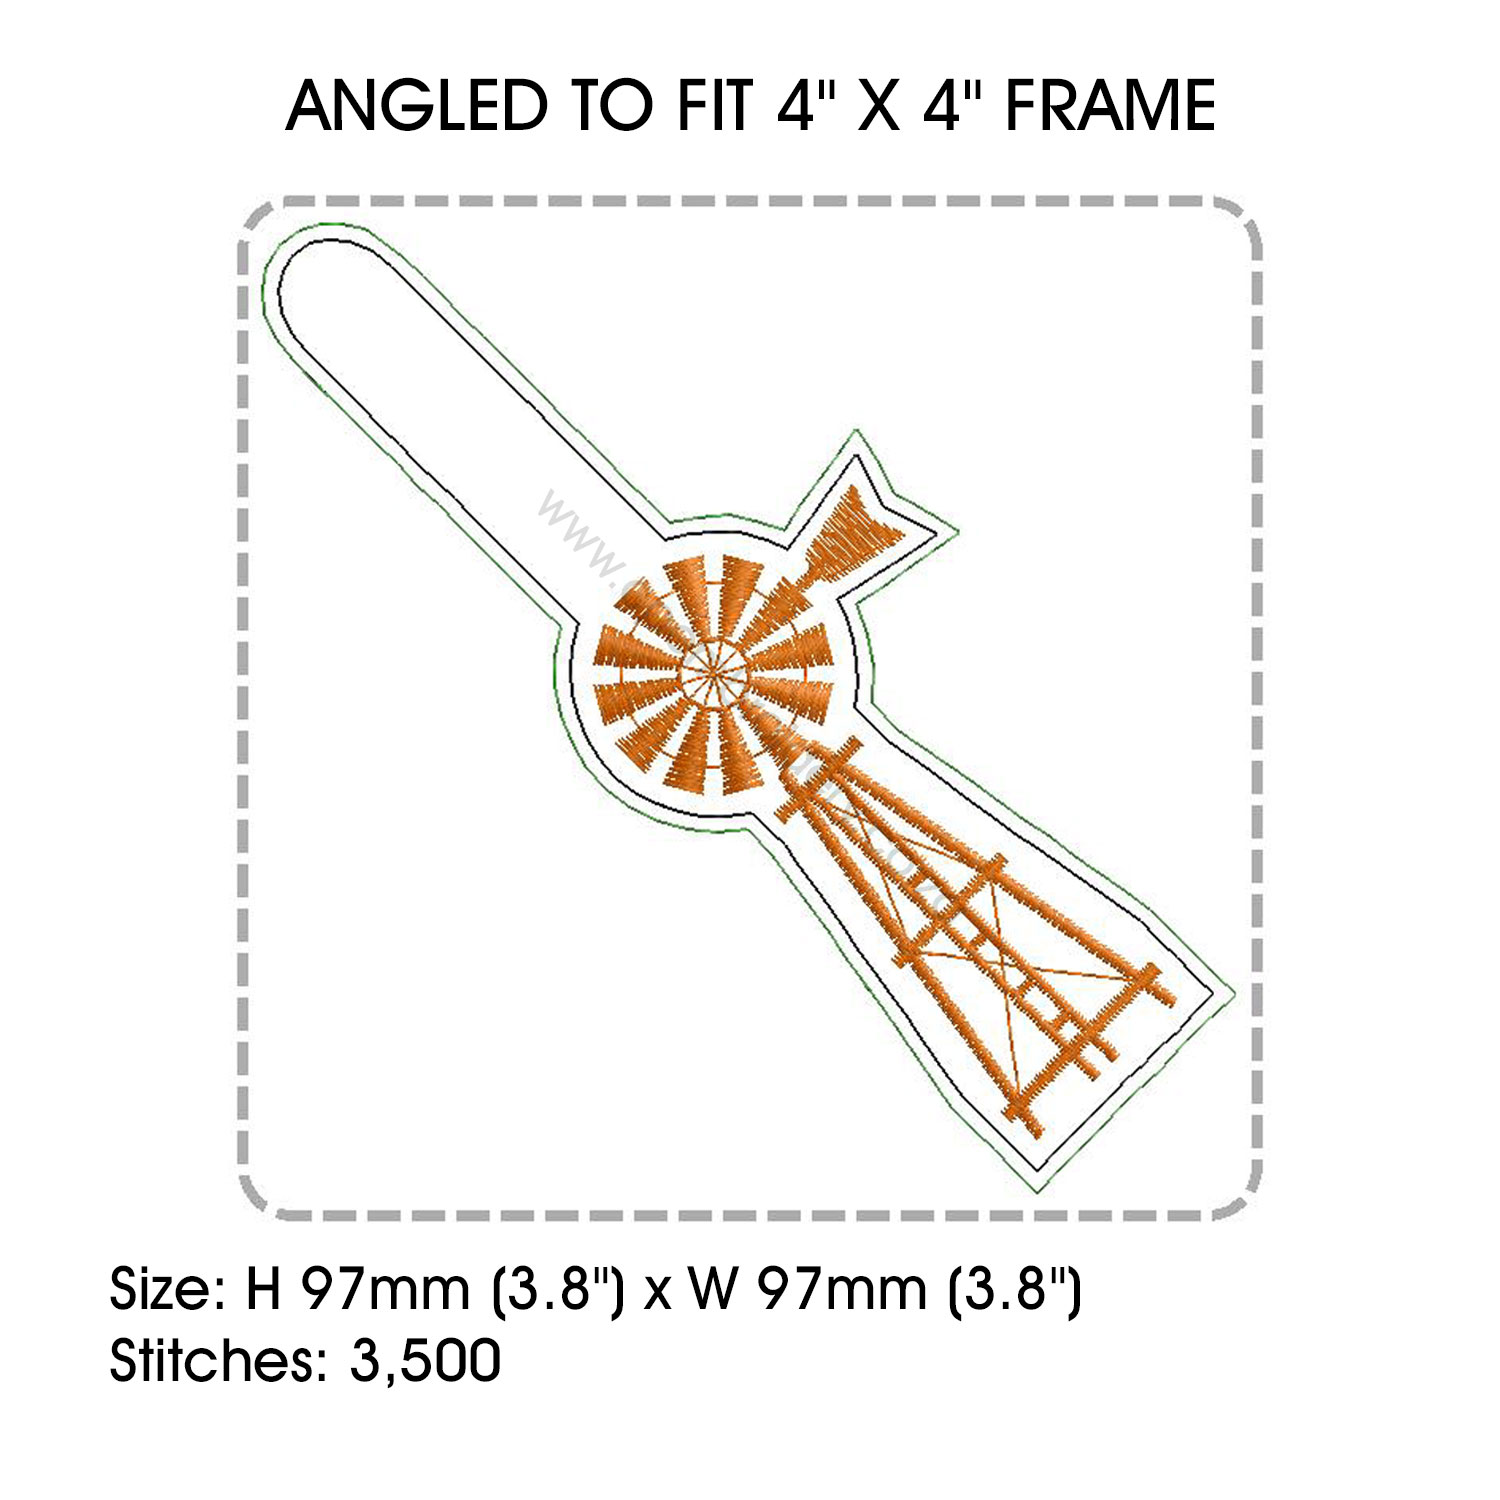 hight resolution of african farmhouse windmill key fob embroidery design example image 4